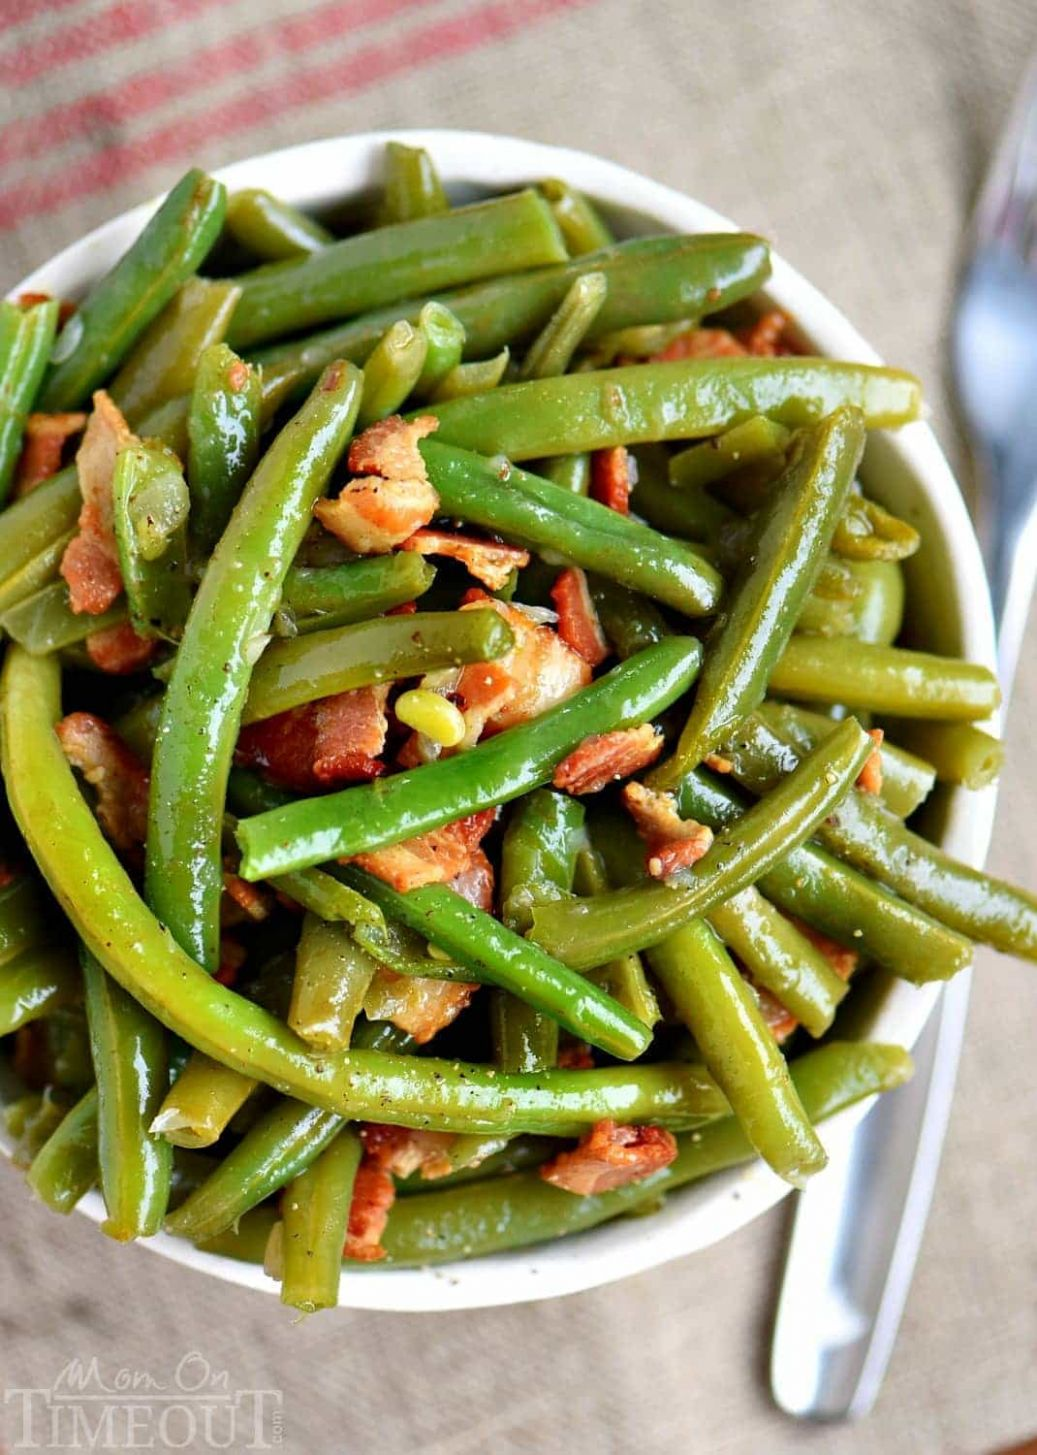 My Nana's Famous Green Beans - Recipes Cooking Fresh Green Beans